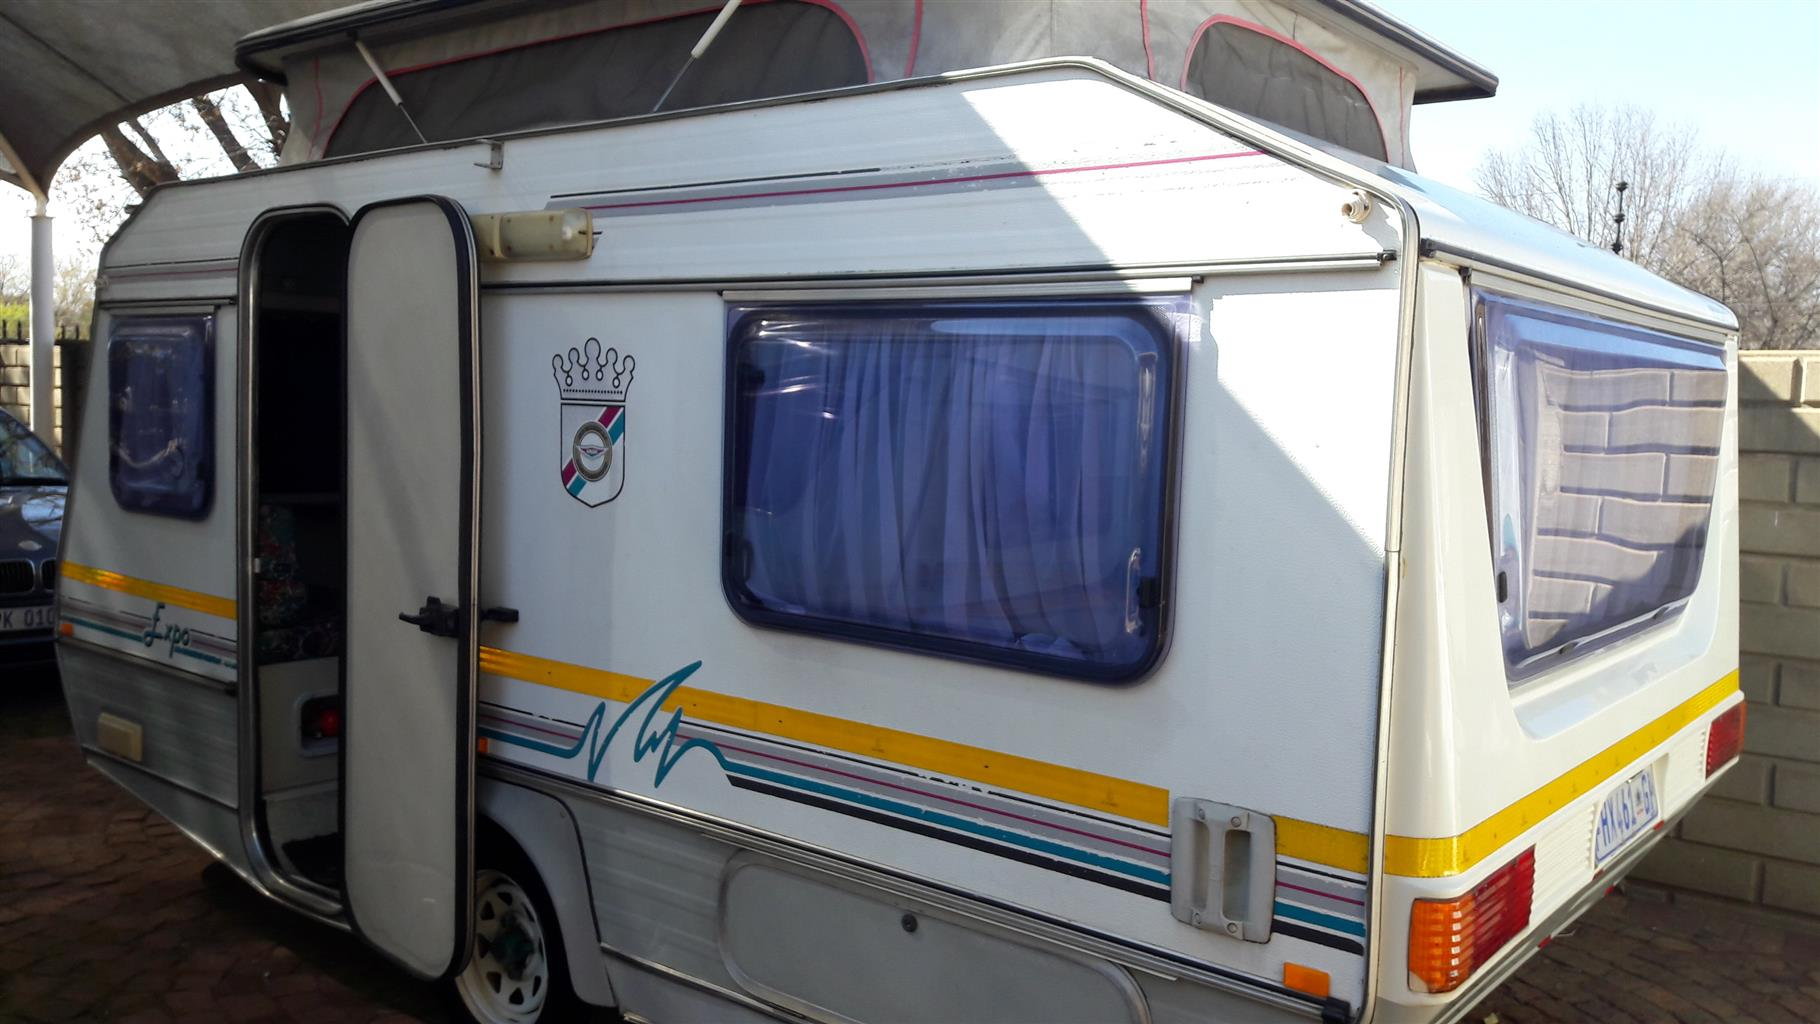 jurgens expo with full tent and aircon in excellent condition must be seen